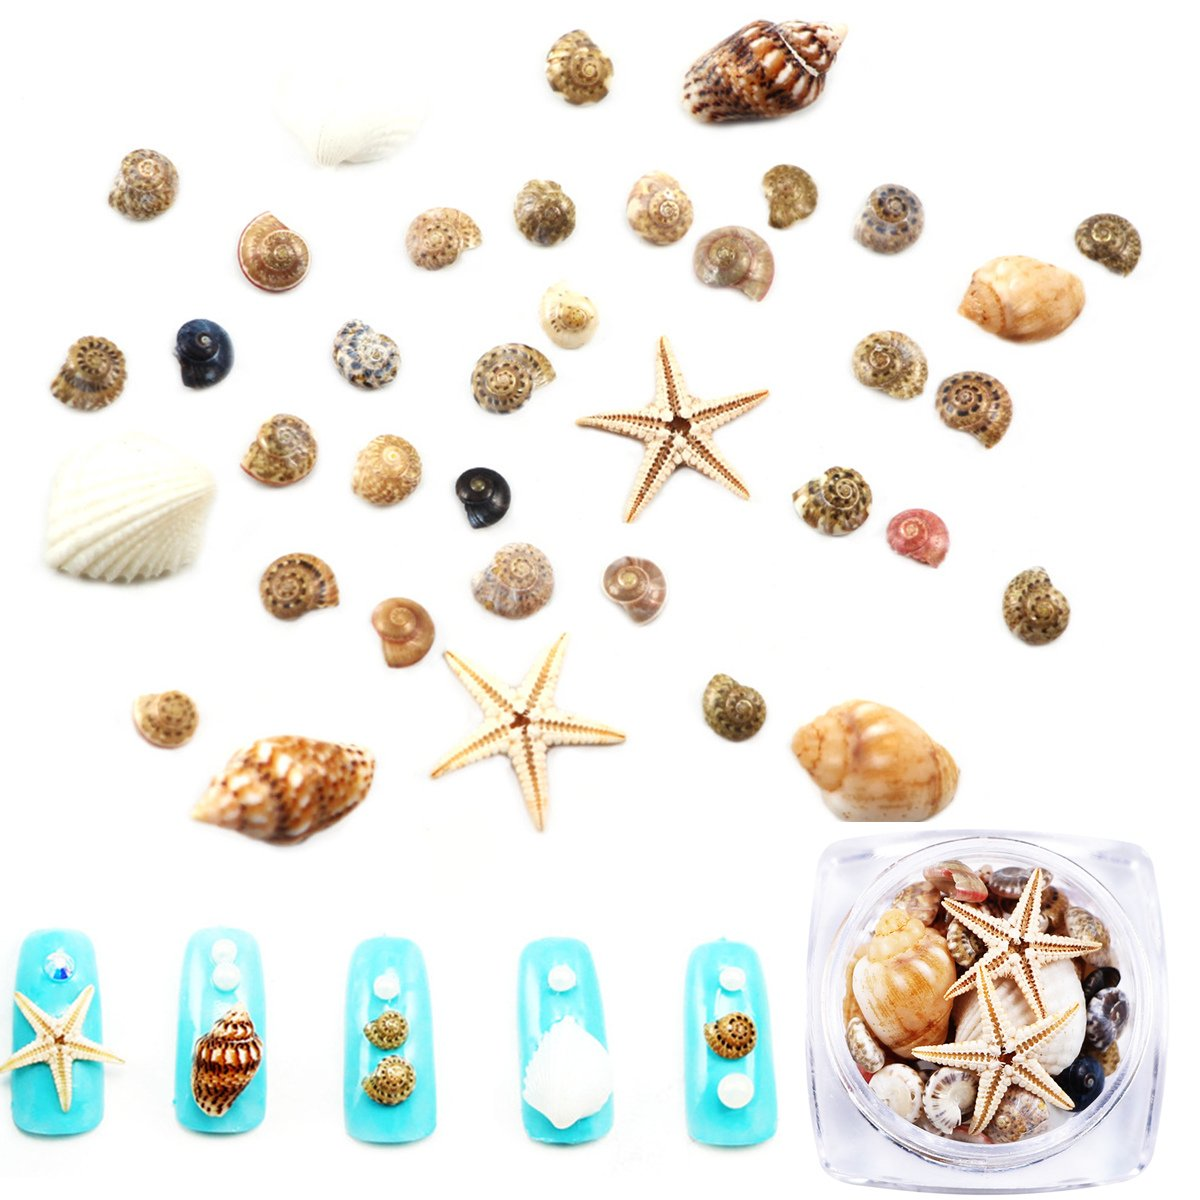 Mezerdoo 1 BOX Ocean Style Decorations Natural DIY Mini Conch Shells Starfish Sea Beach Ornaments 3D Nail Gems Accessories Manicure Nail Art Decoration Tools